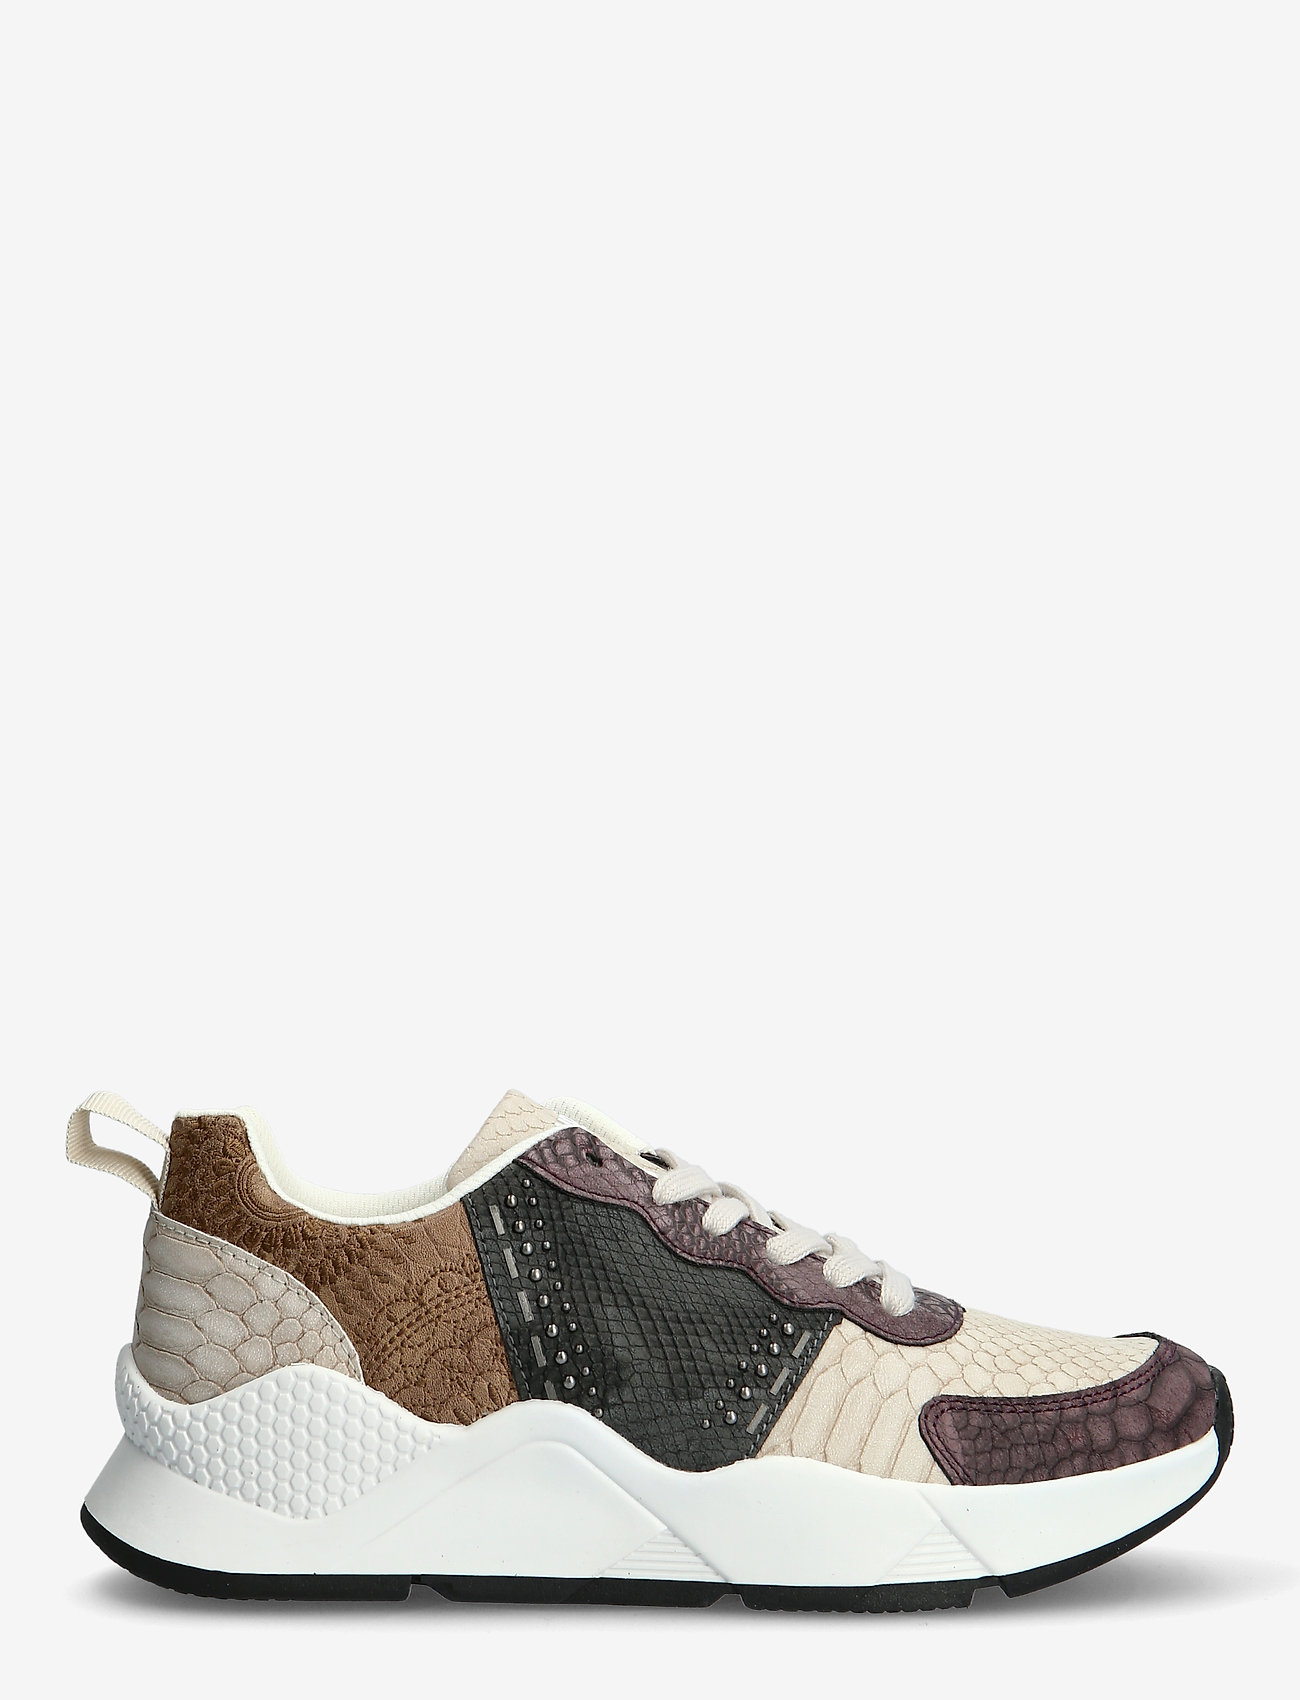 Desigual Shoes - SHOES HYDRA PACH - låga sneakers - brown stone - 1